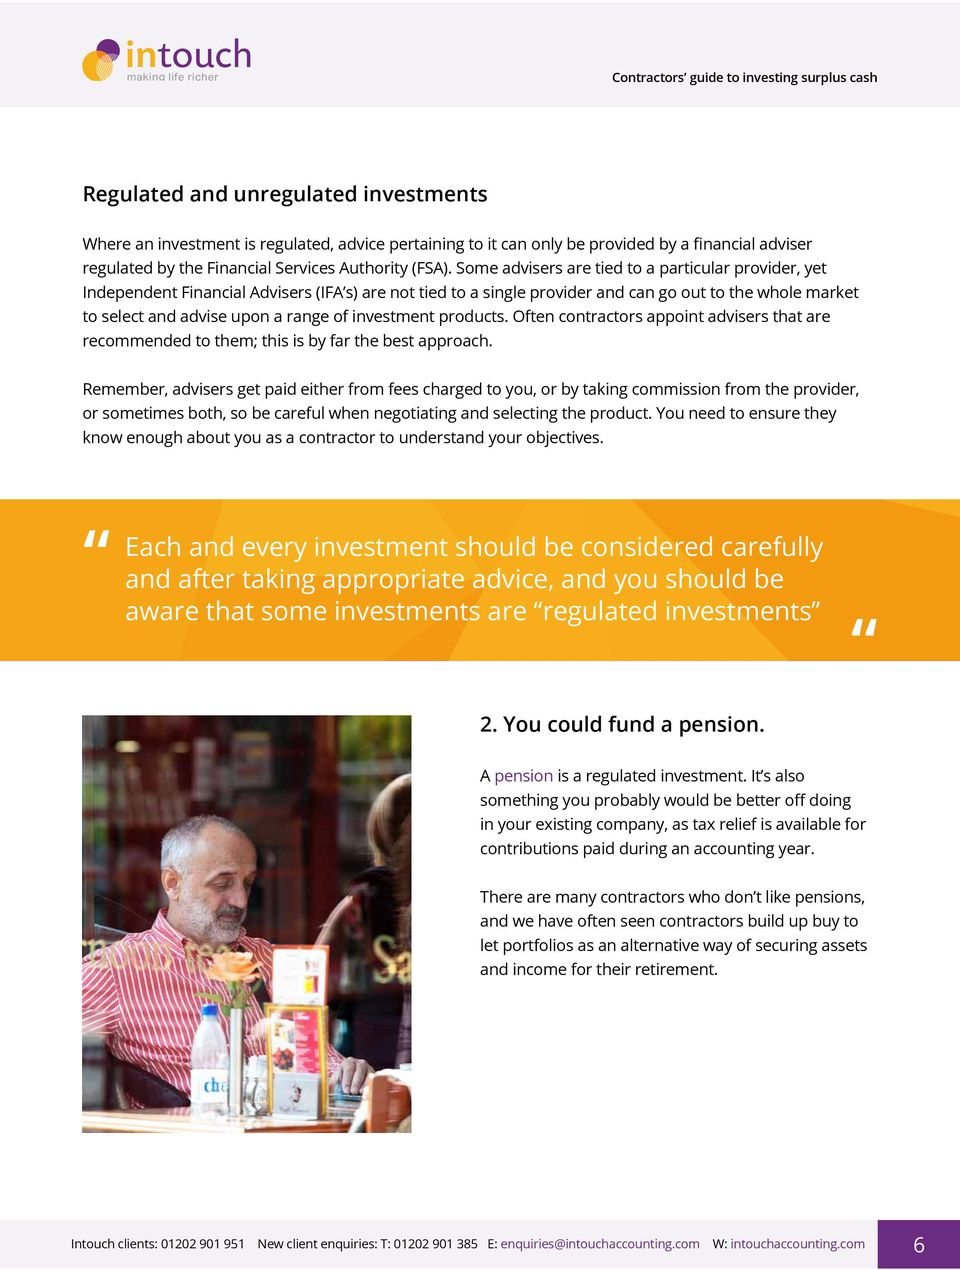 investment products. Often contractors appoint advisers that are recommended to them; this is by far the best approach.